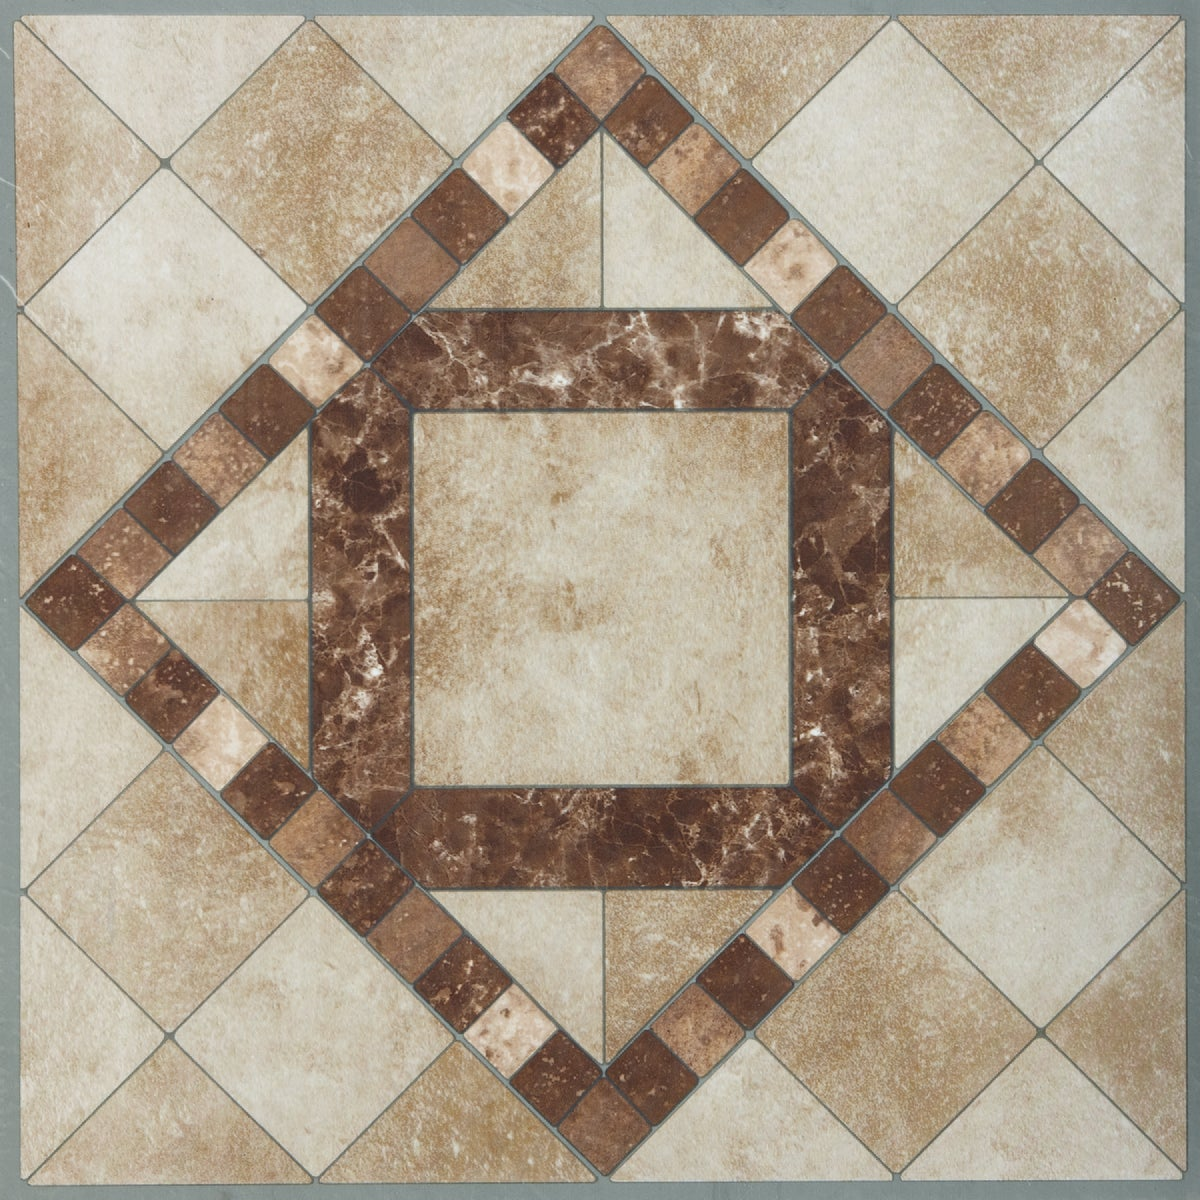 "12"" TRAVRTN MOSAIC TILE - KC90704 by Do it Best Global Sourcing"